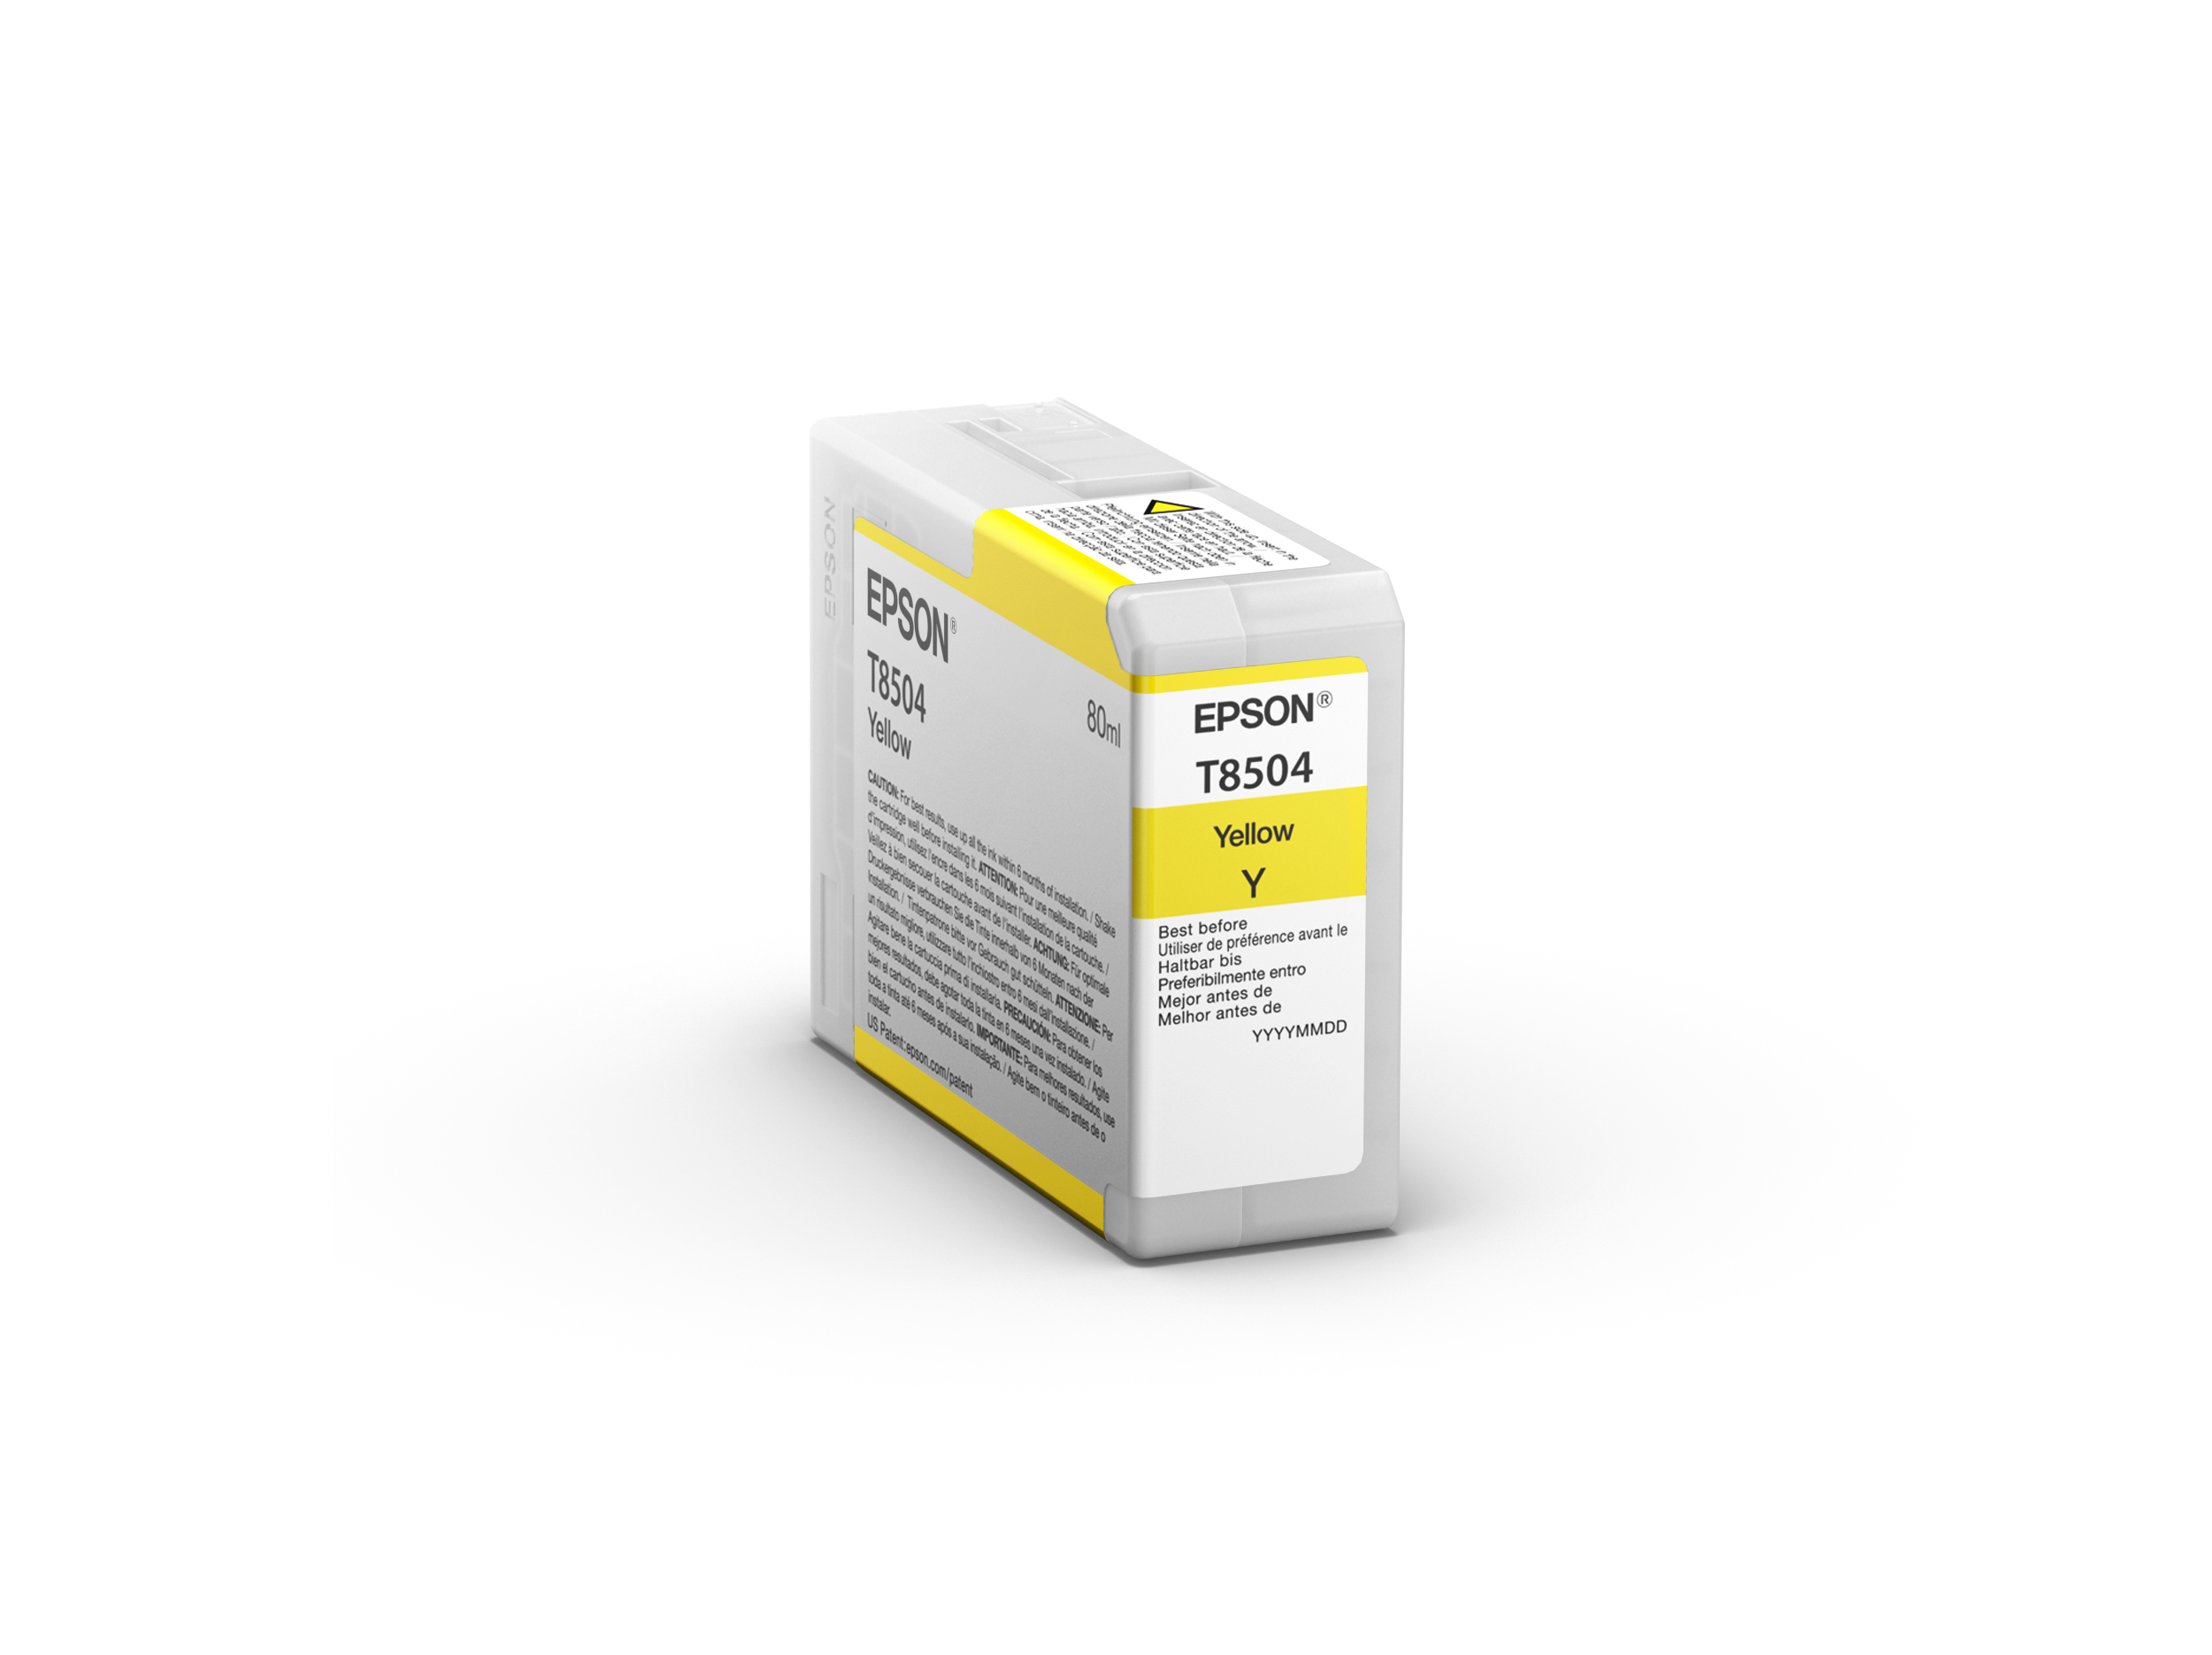 Epson SureColor SC-P800 Ultrachrome HD Ink YELLOW 80ml